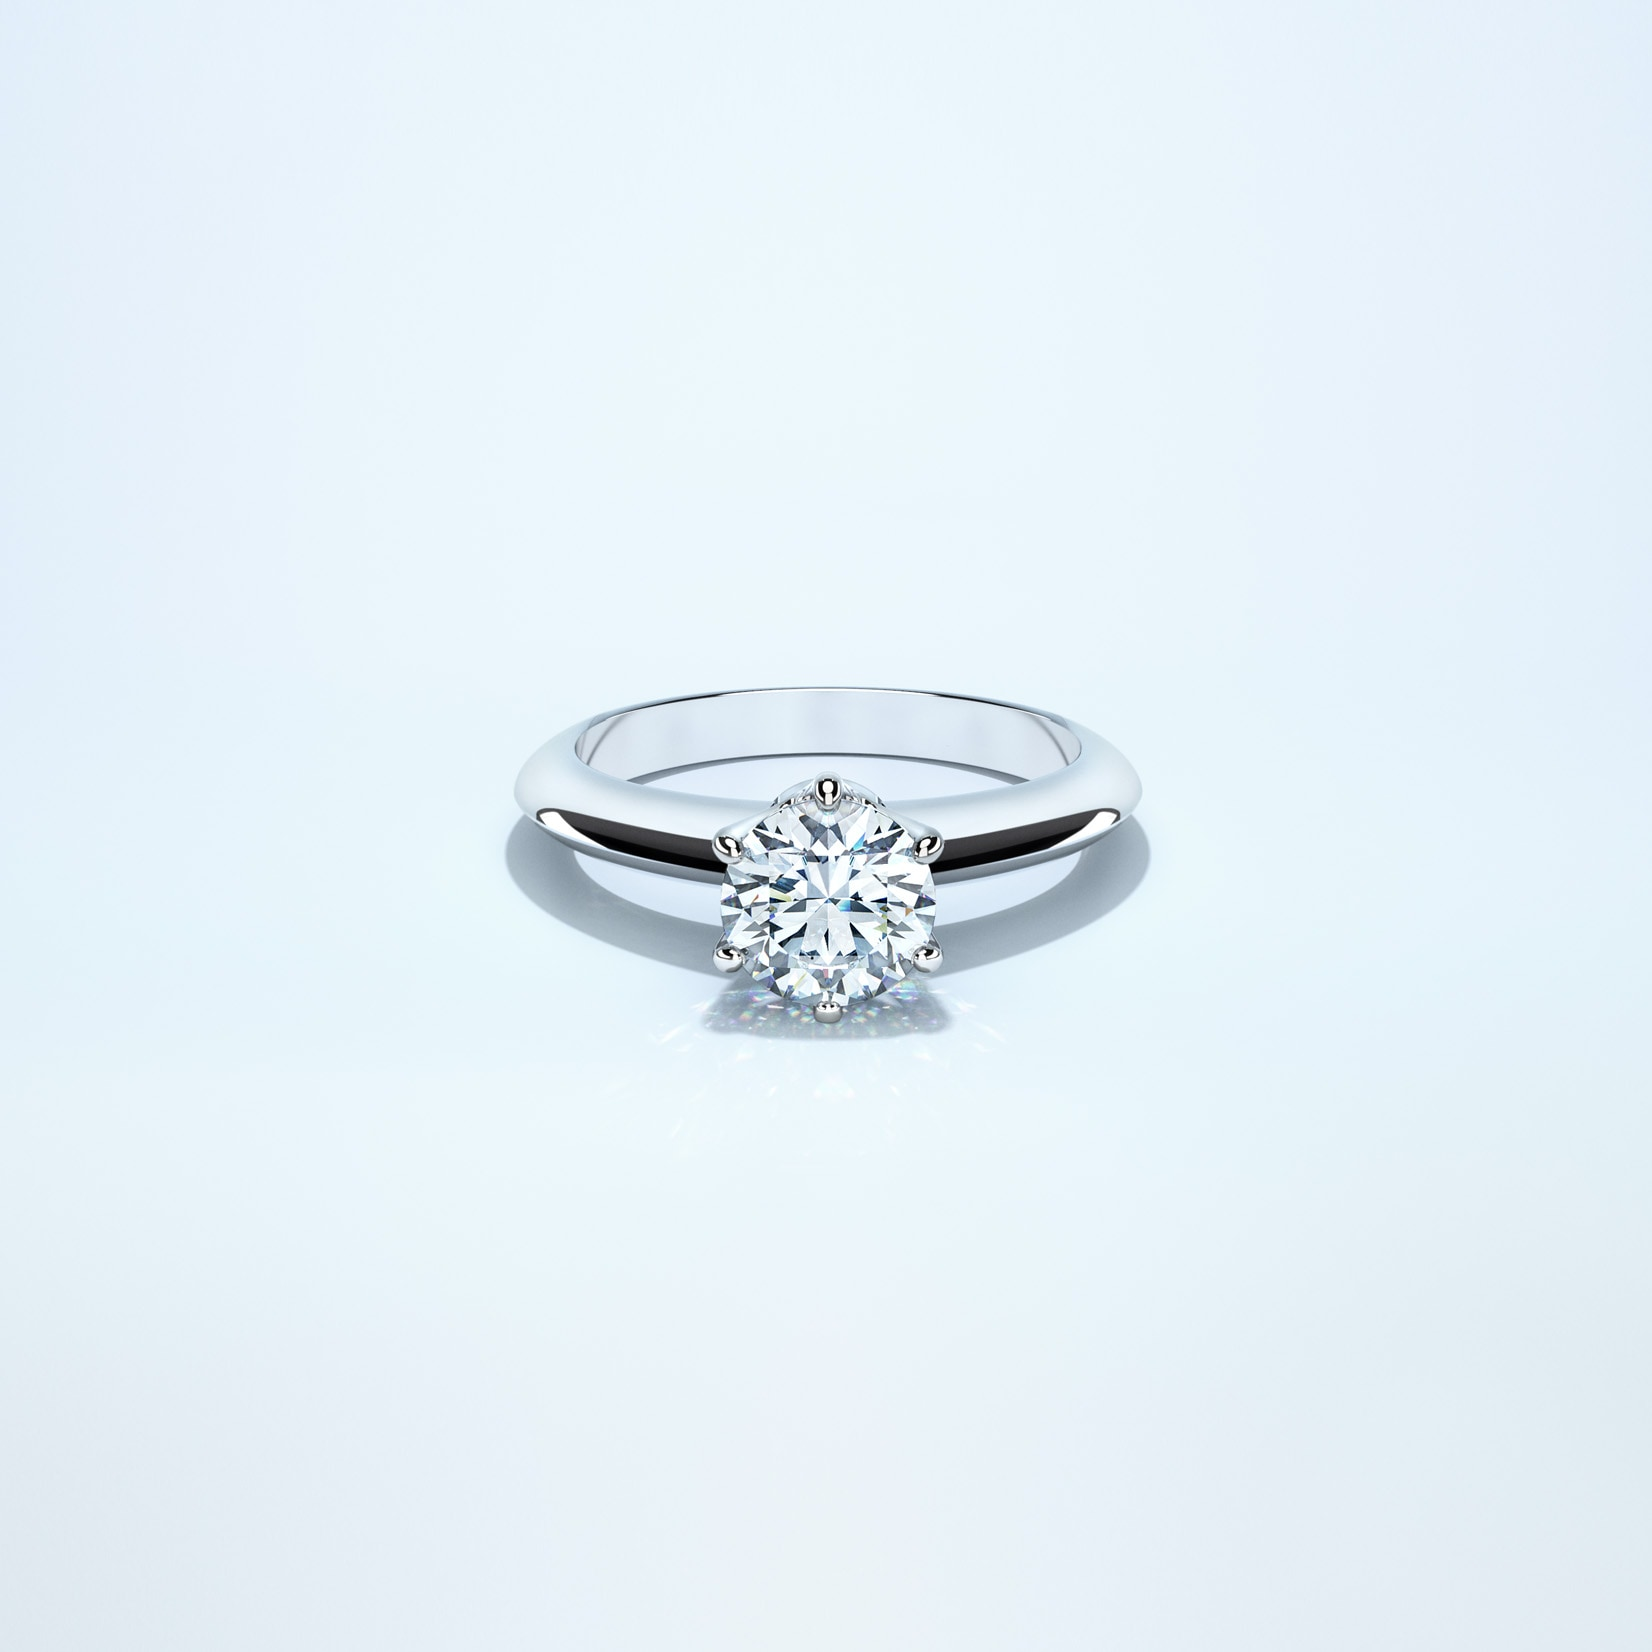 A classic solitaire platinum ring.